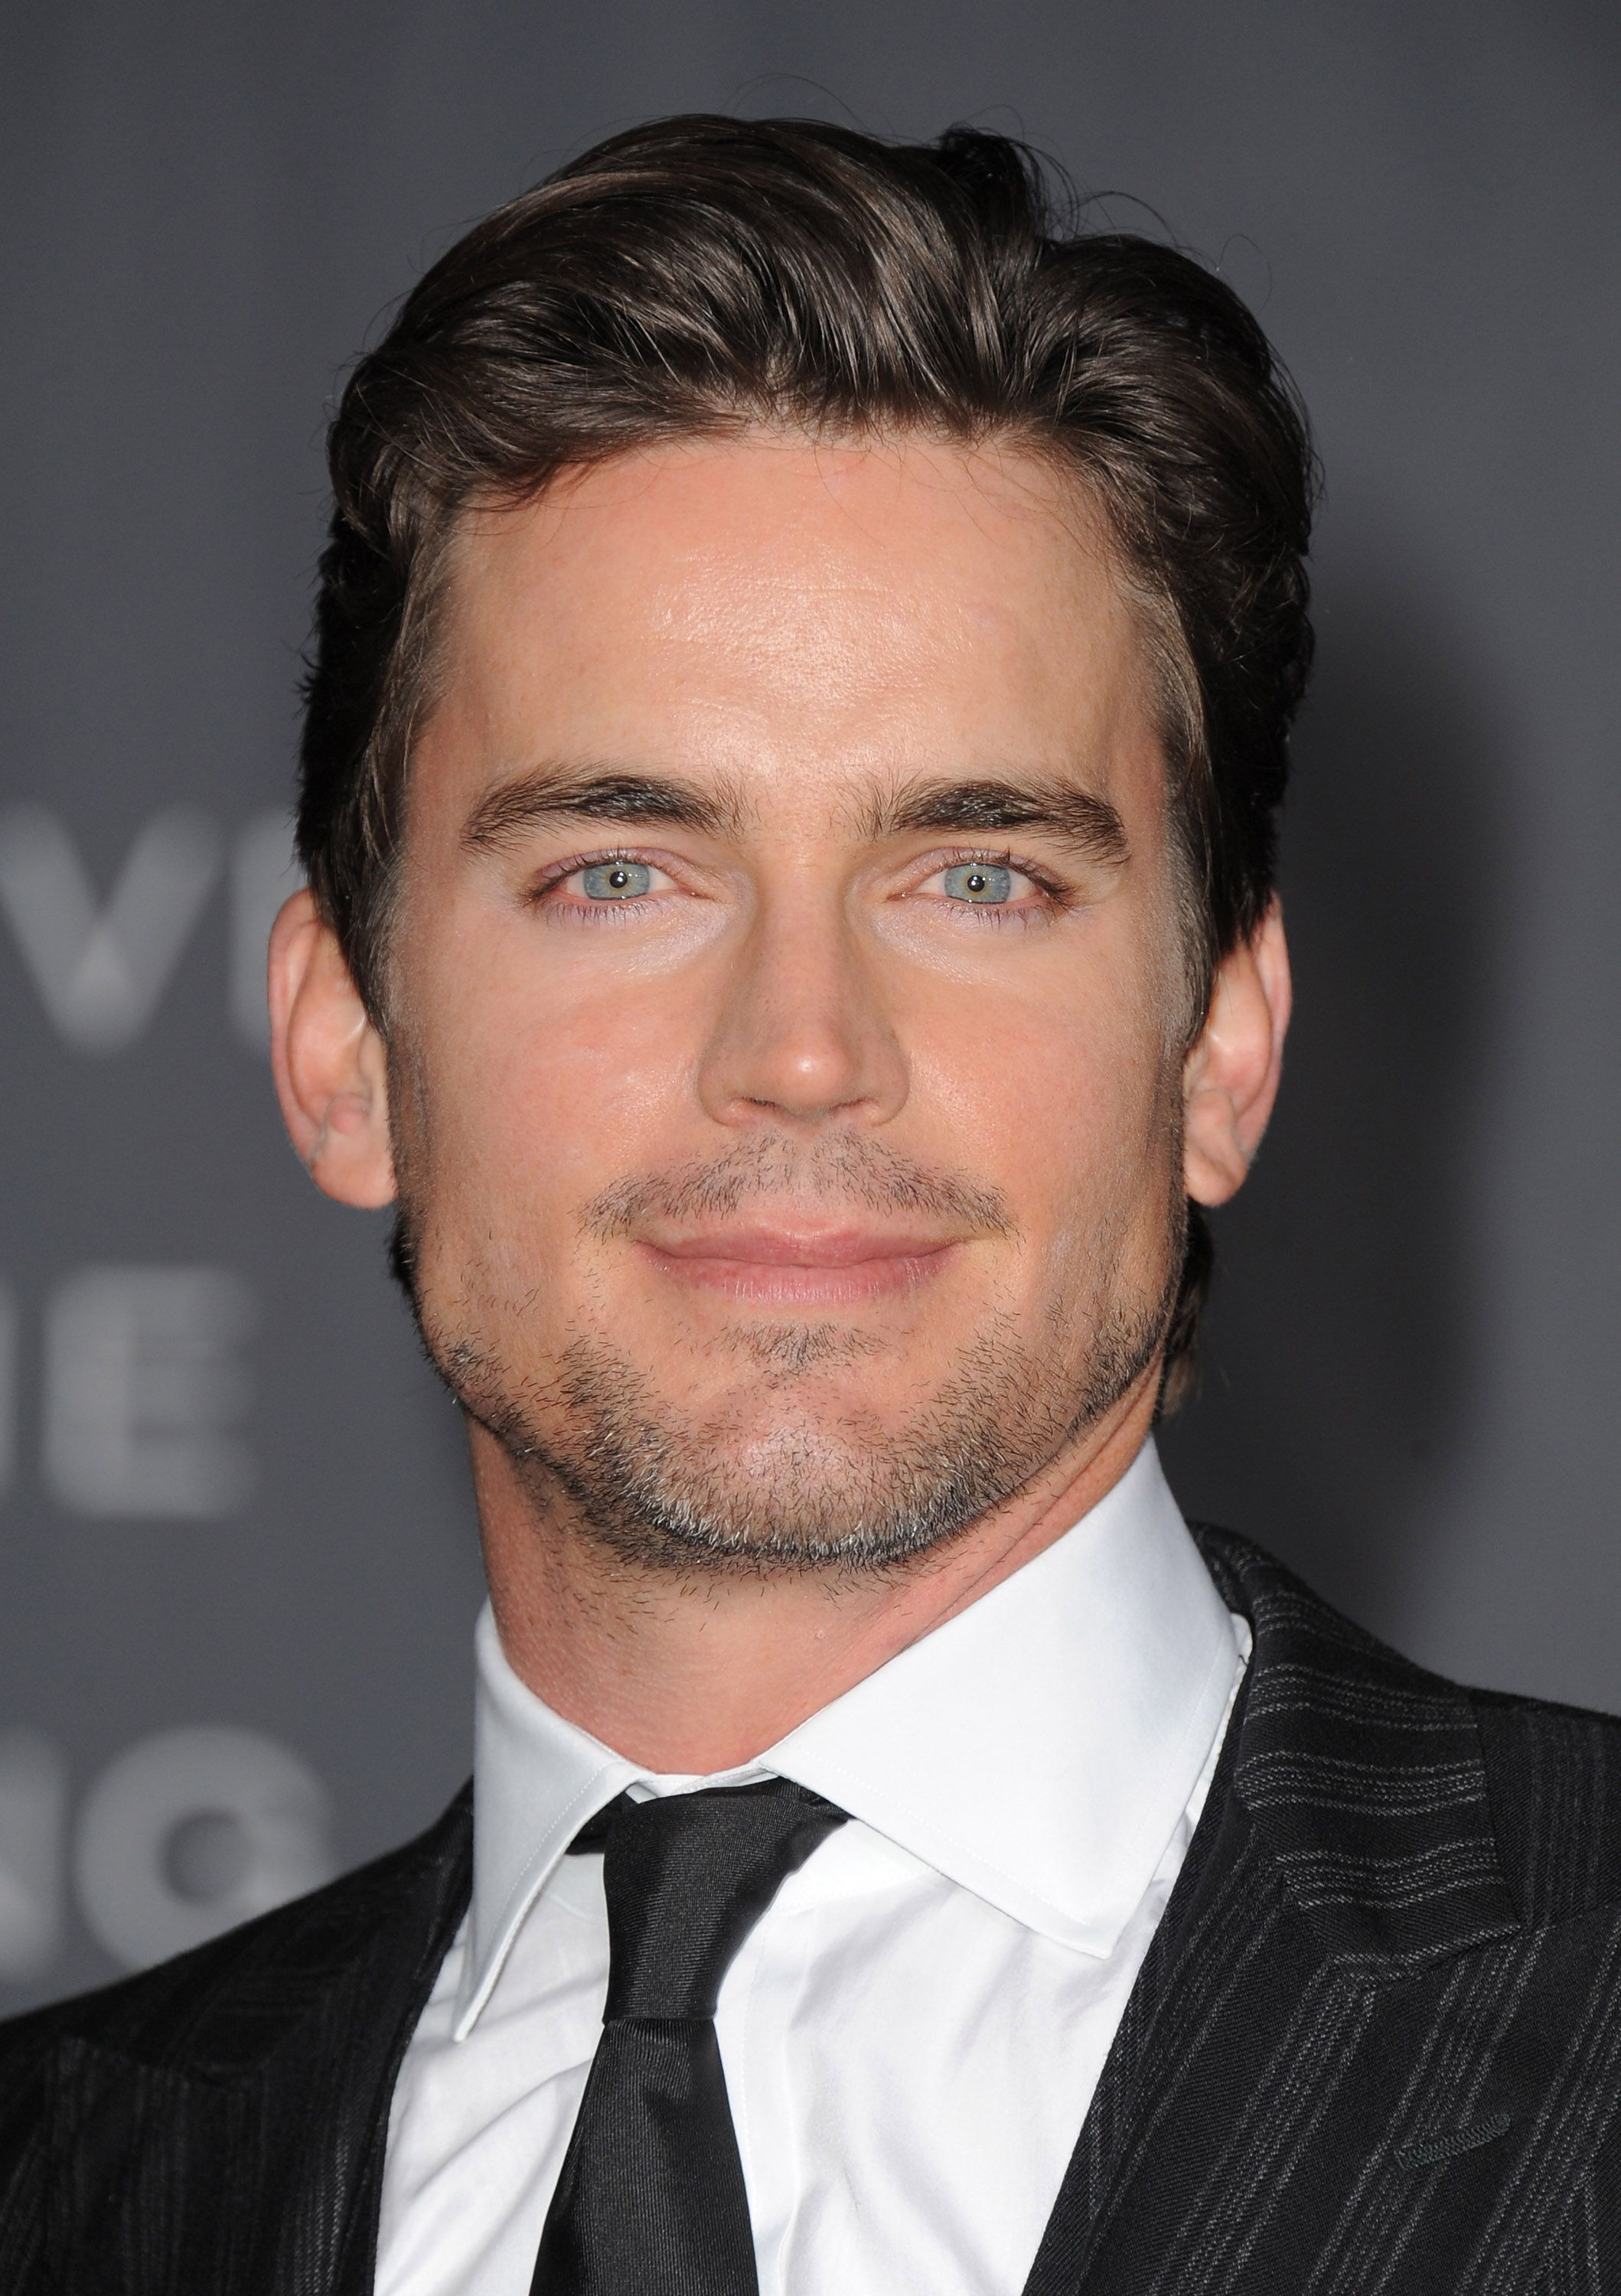 matt bomer haircut - Google Search | Hairstyles | Matt ...